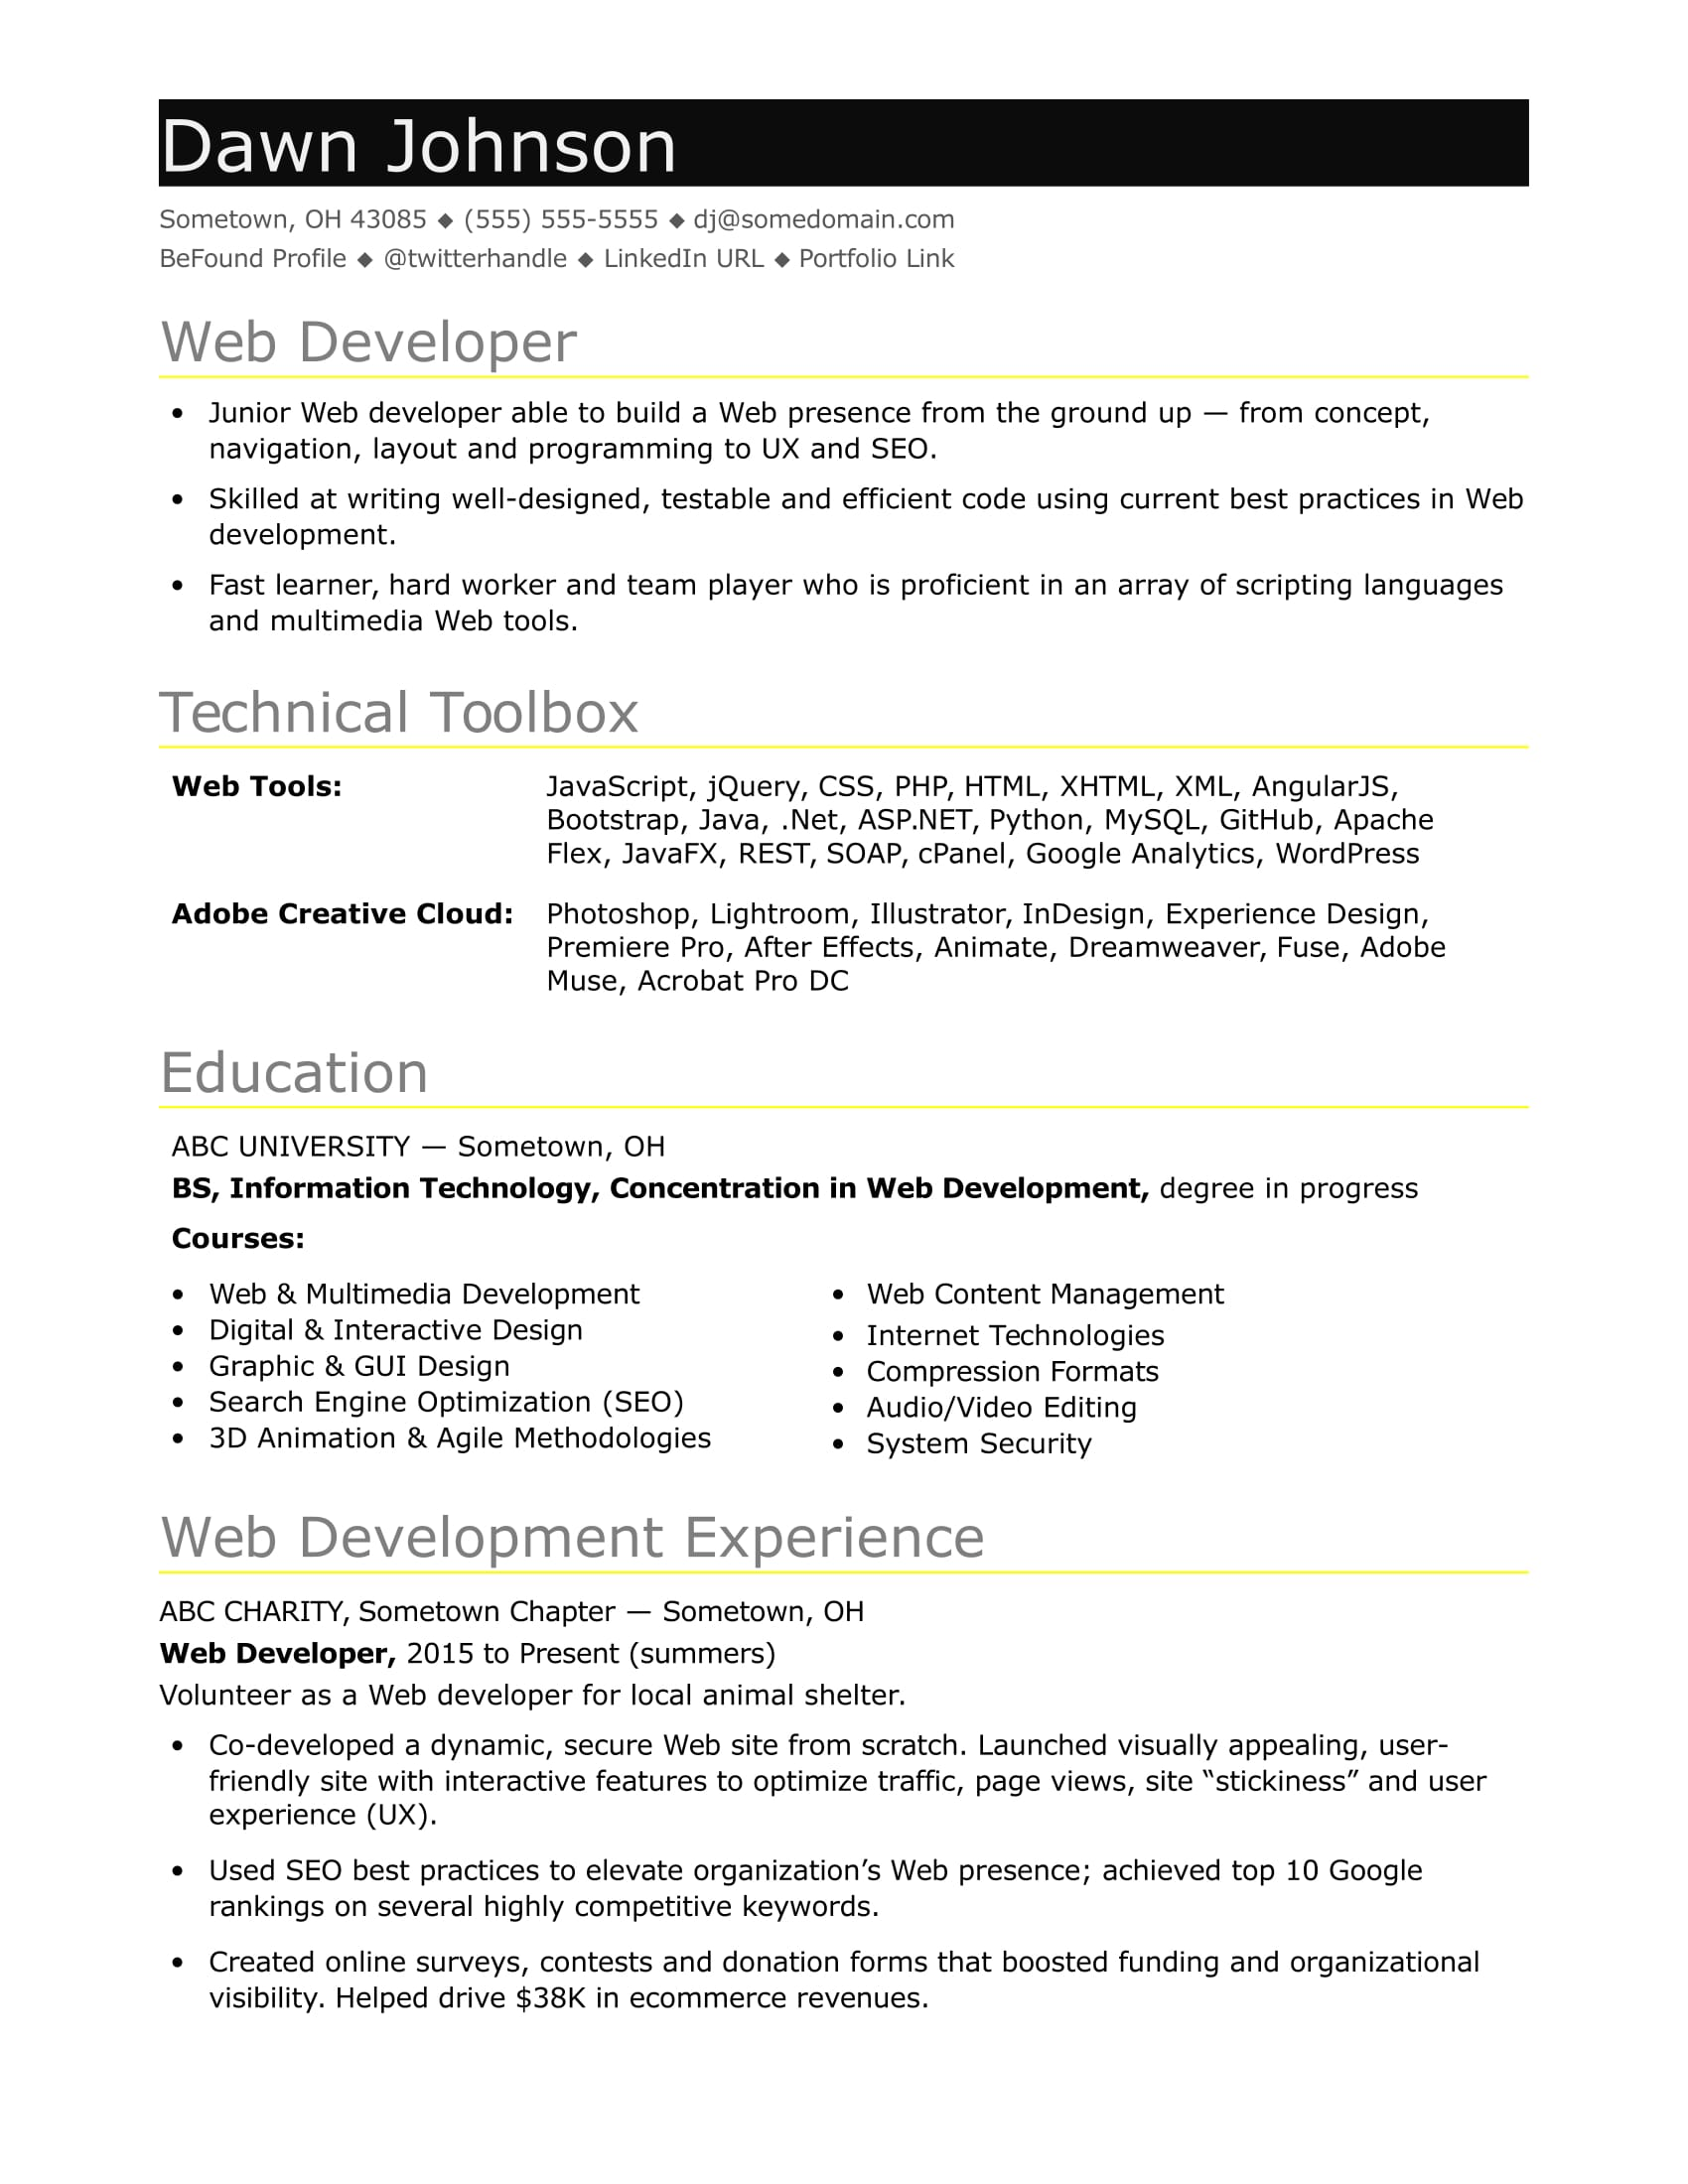 sample resume for an entry level it developer monster web funny cartoons aprn writers Resume Web Developer Resume Entry Level